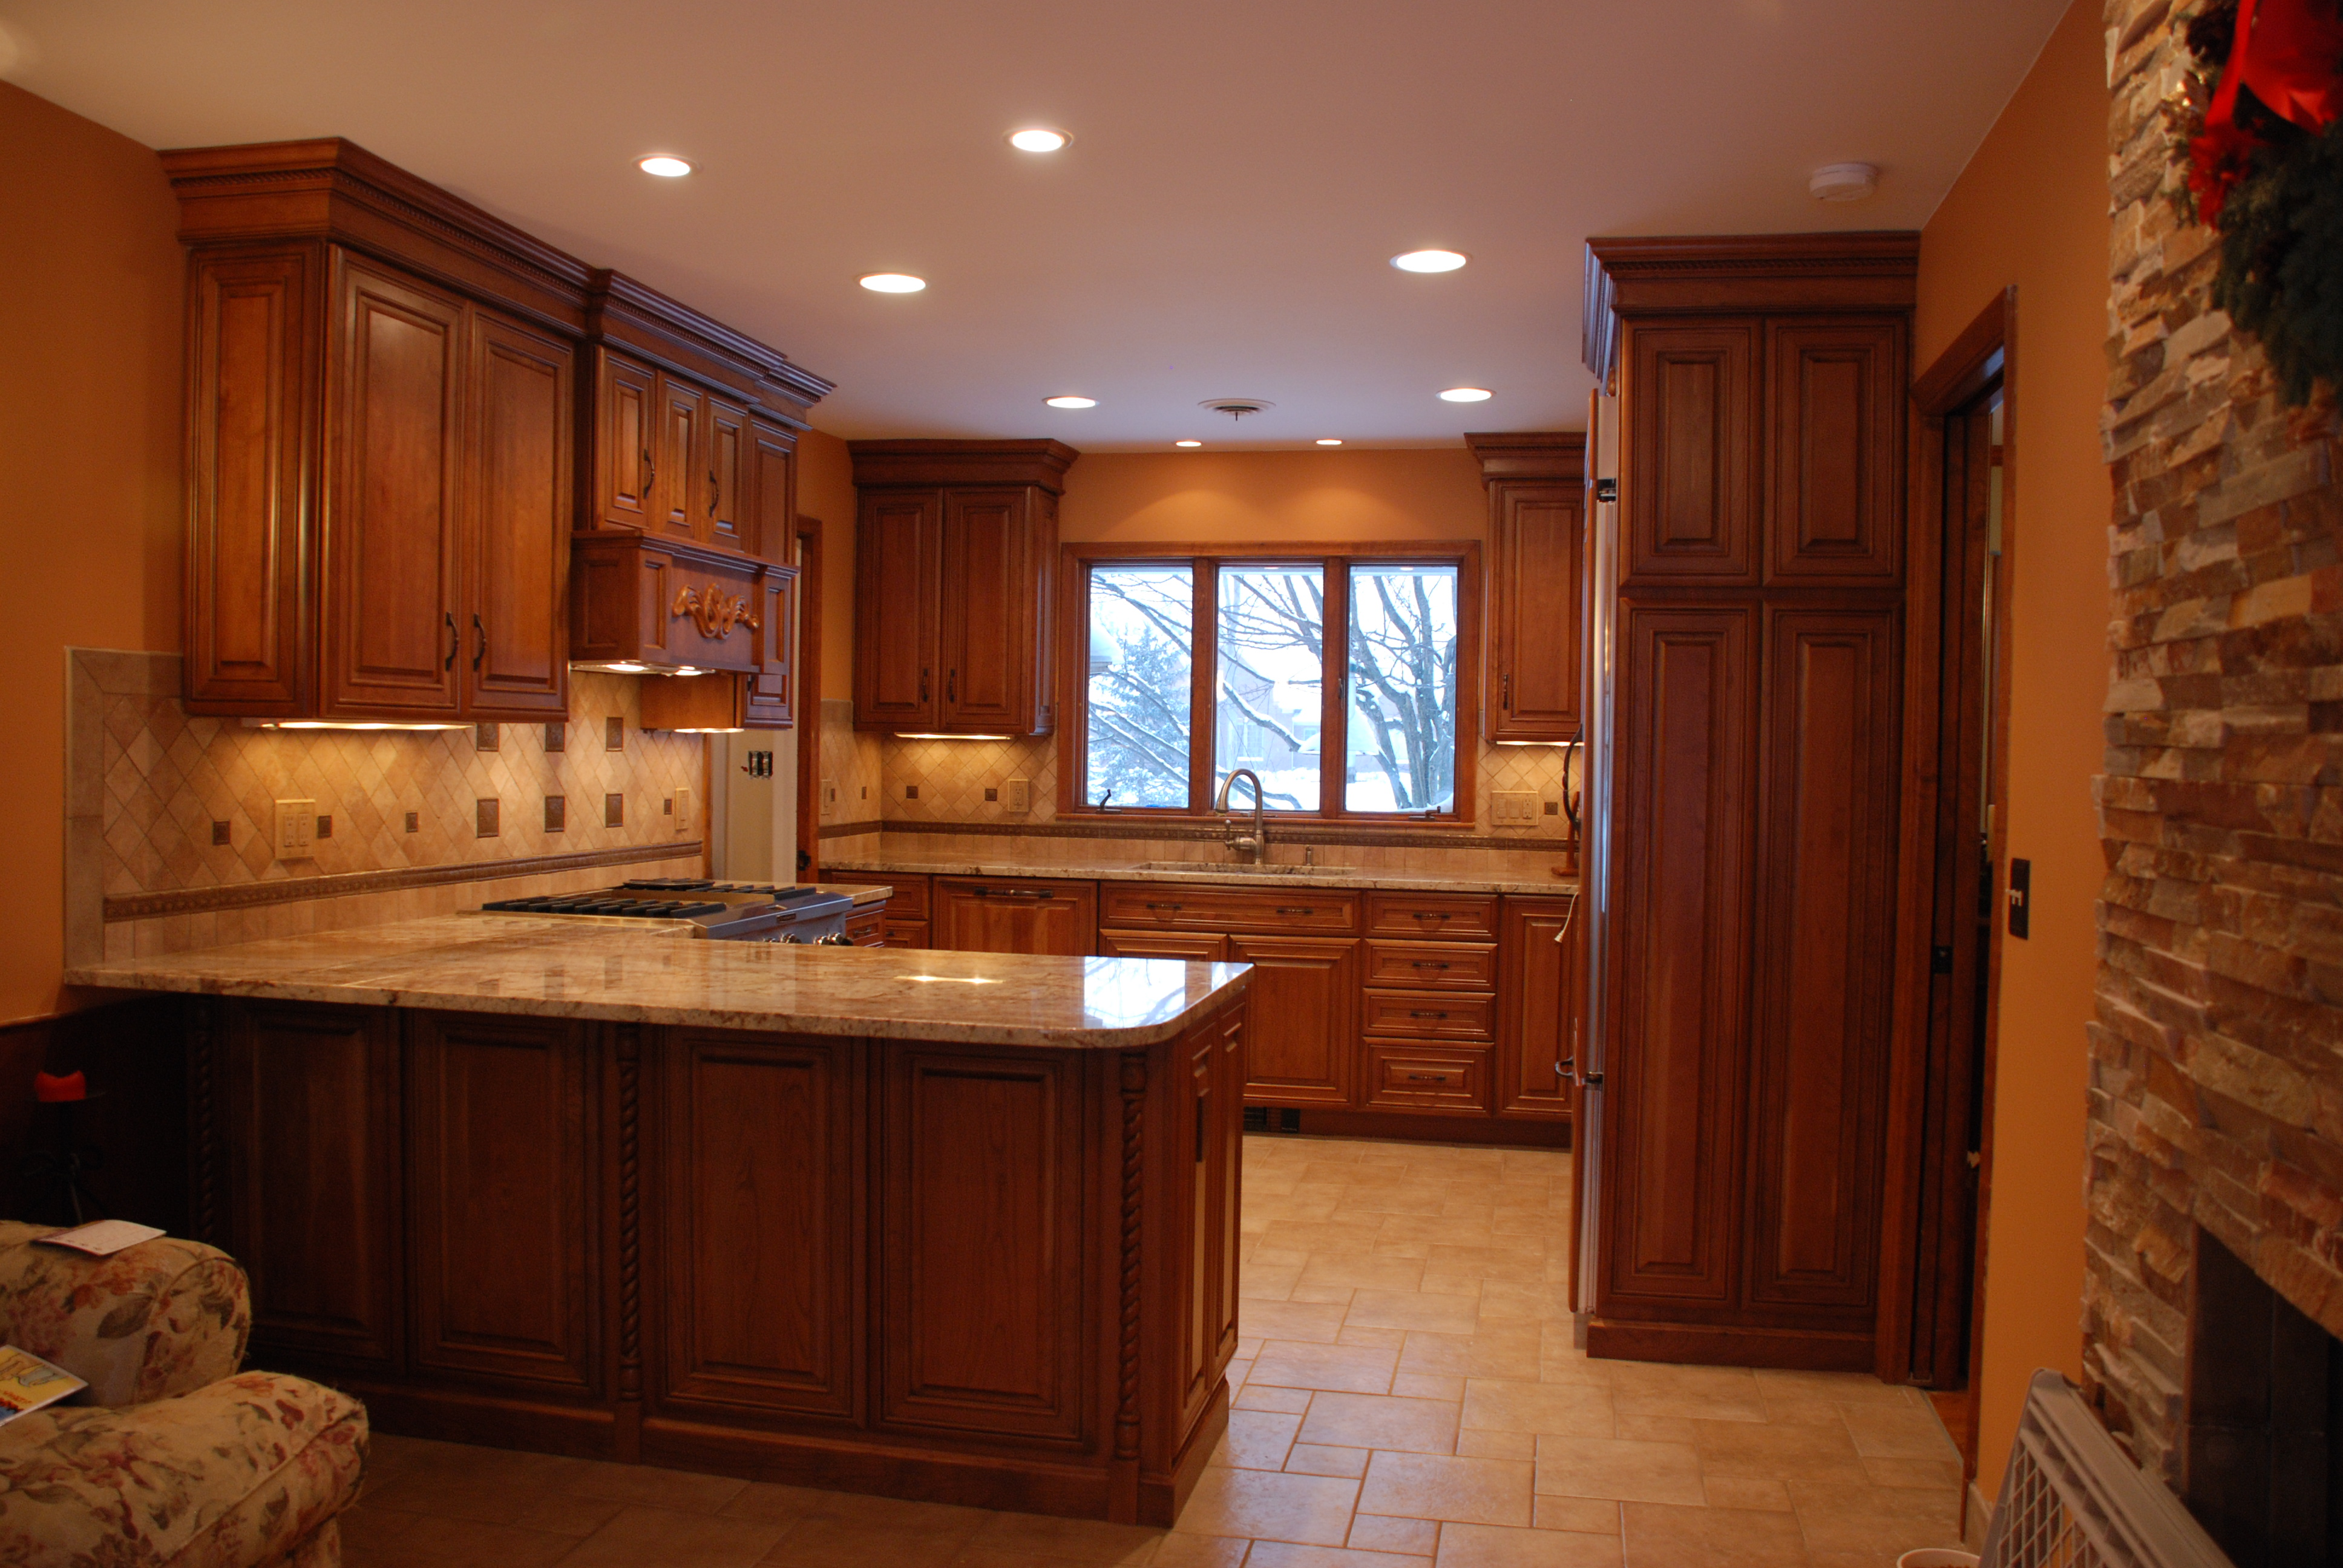 Kitchen Cabinet Construction 101 - Learn Before You Buy